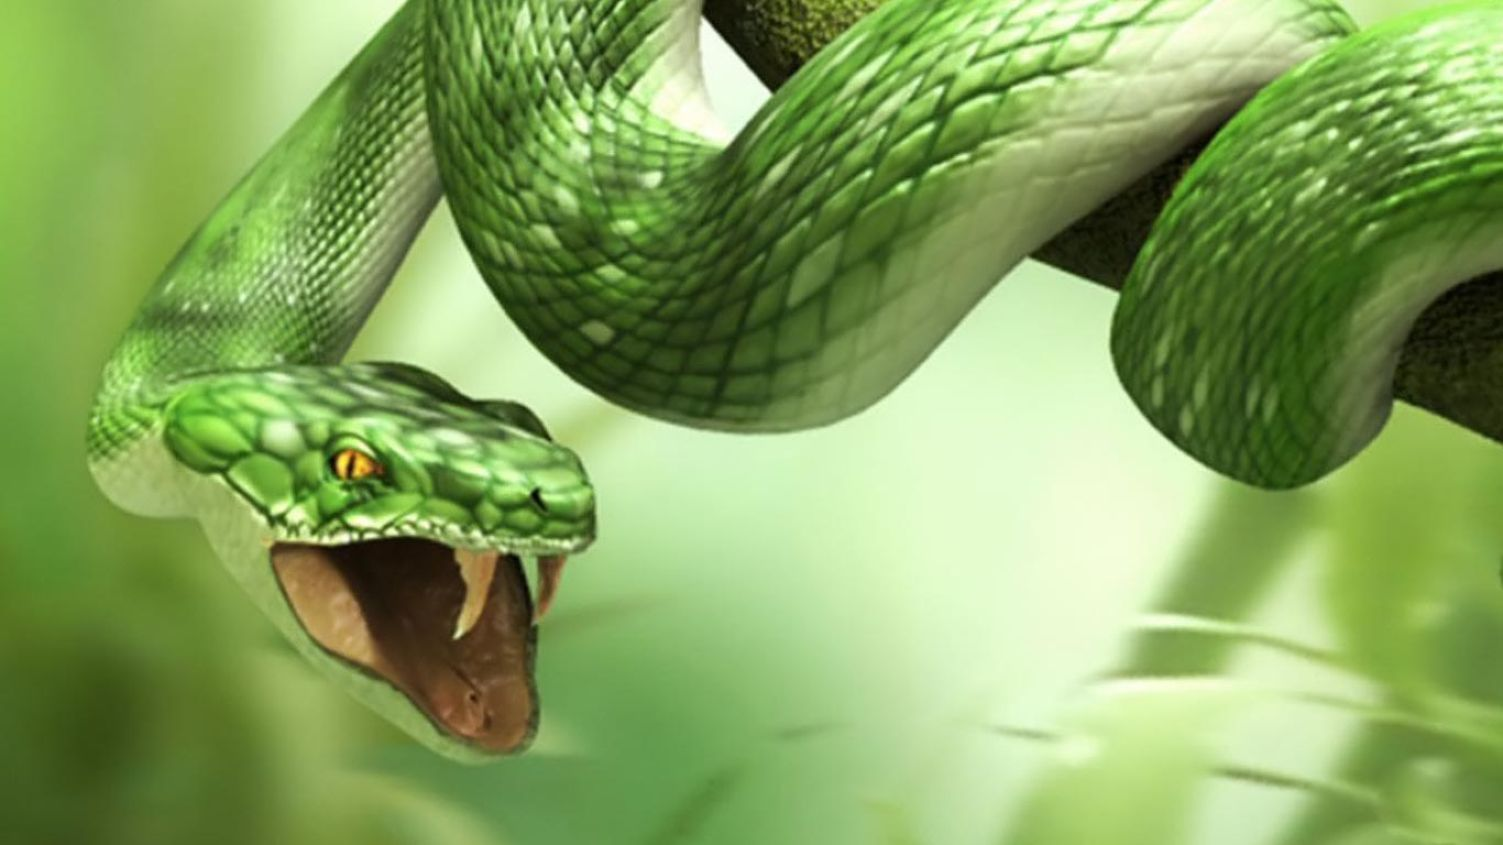 Download free HD 3D Snake HD for Laptop 1366×768 Wallpaper, image